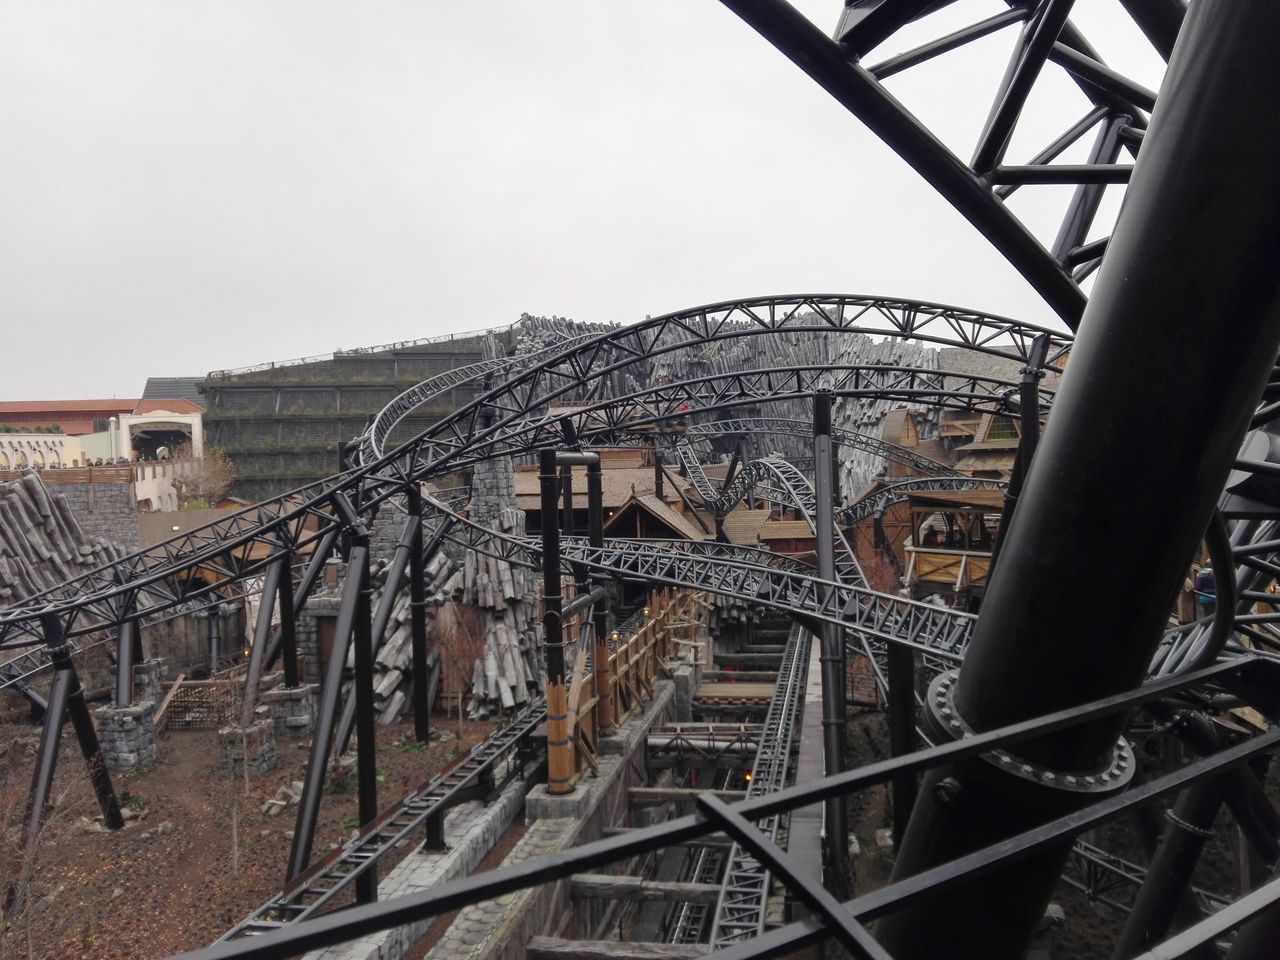 Architecture Built Structure Day My Year My View No People Outdoors Phantasialand Rollercoaster Sky Taron